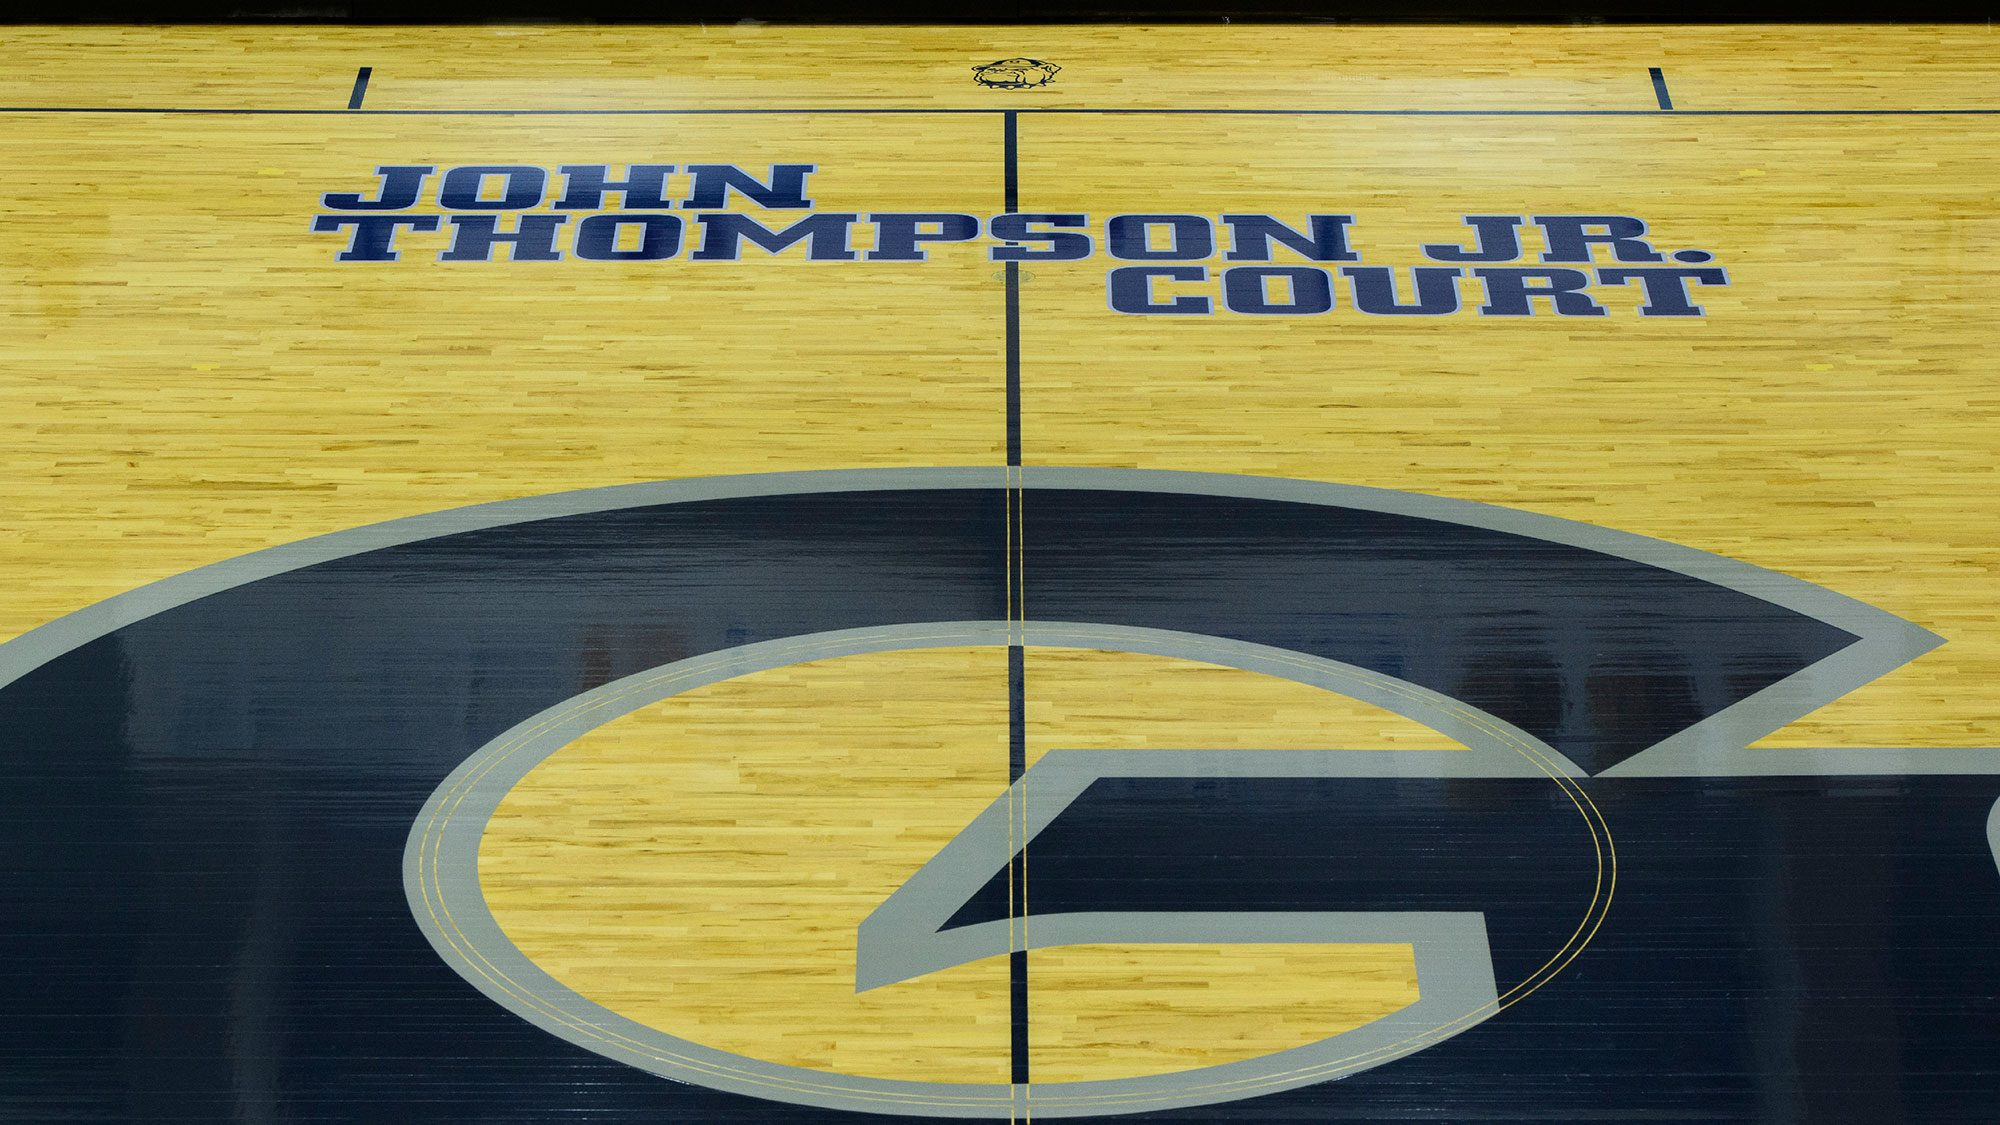 A basketball court with the Geogetown logo and John Thompson Jr. name on the court.